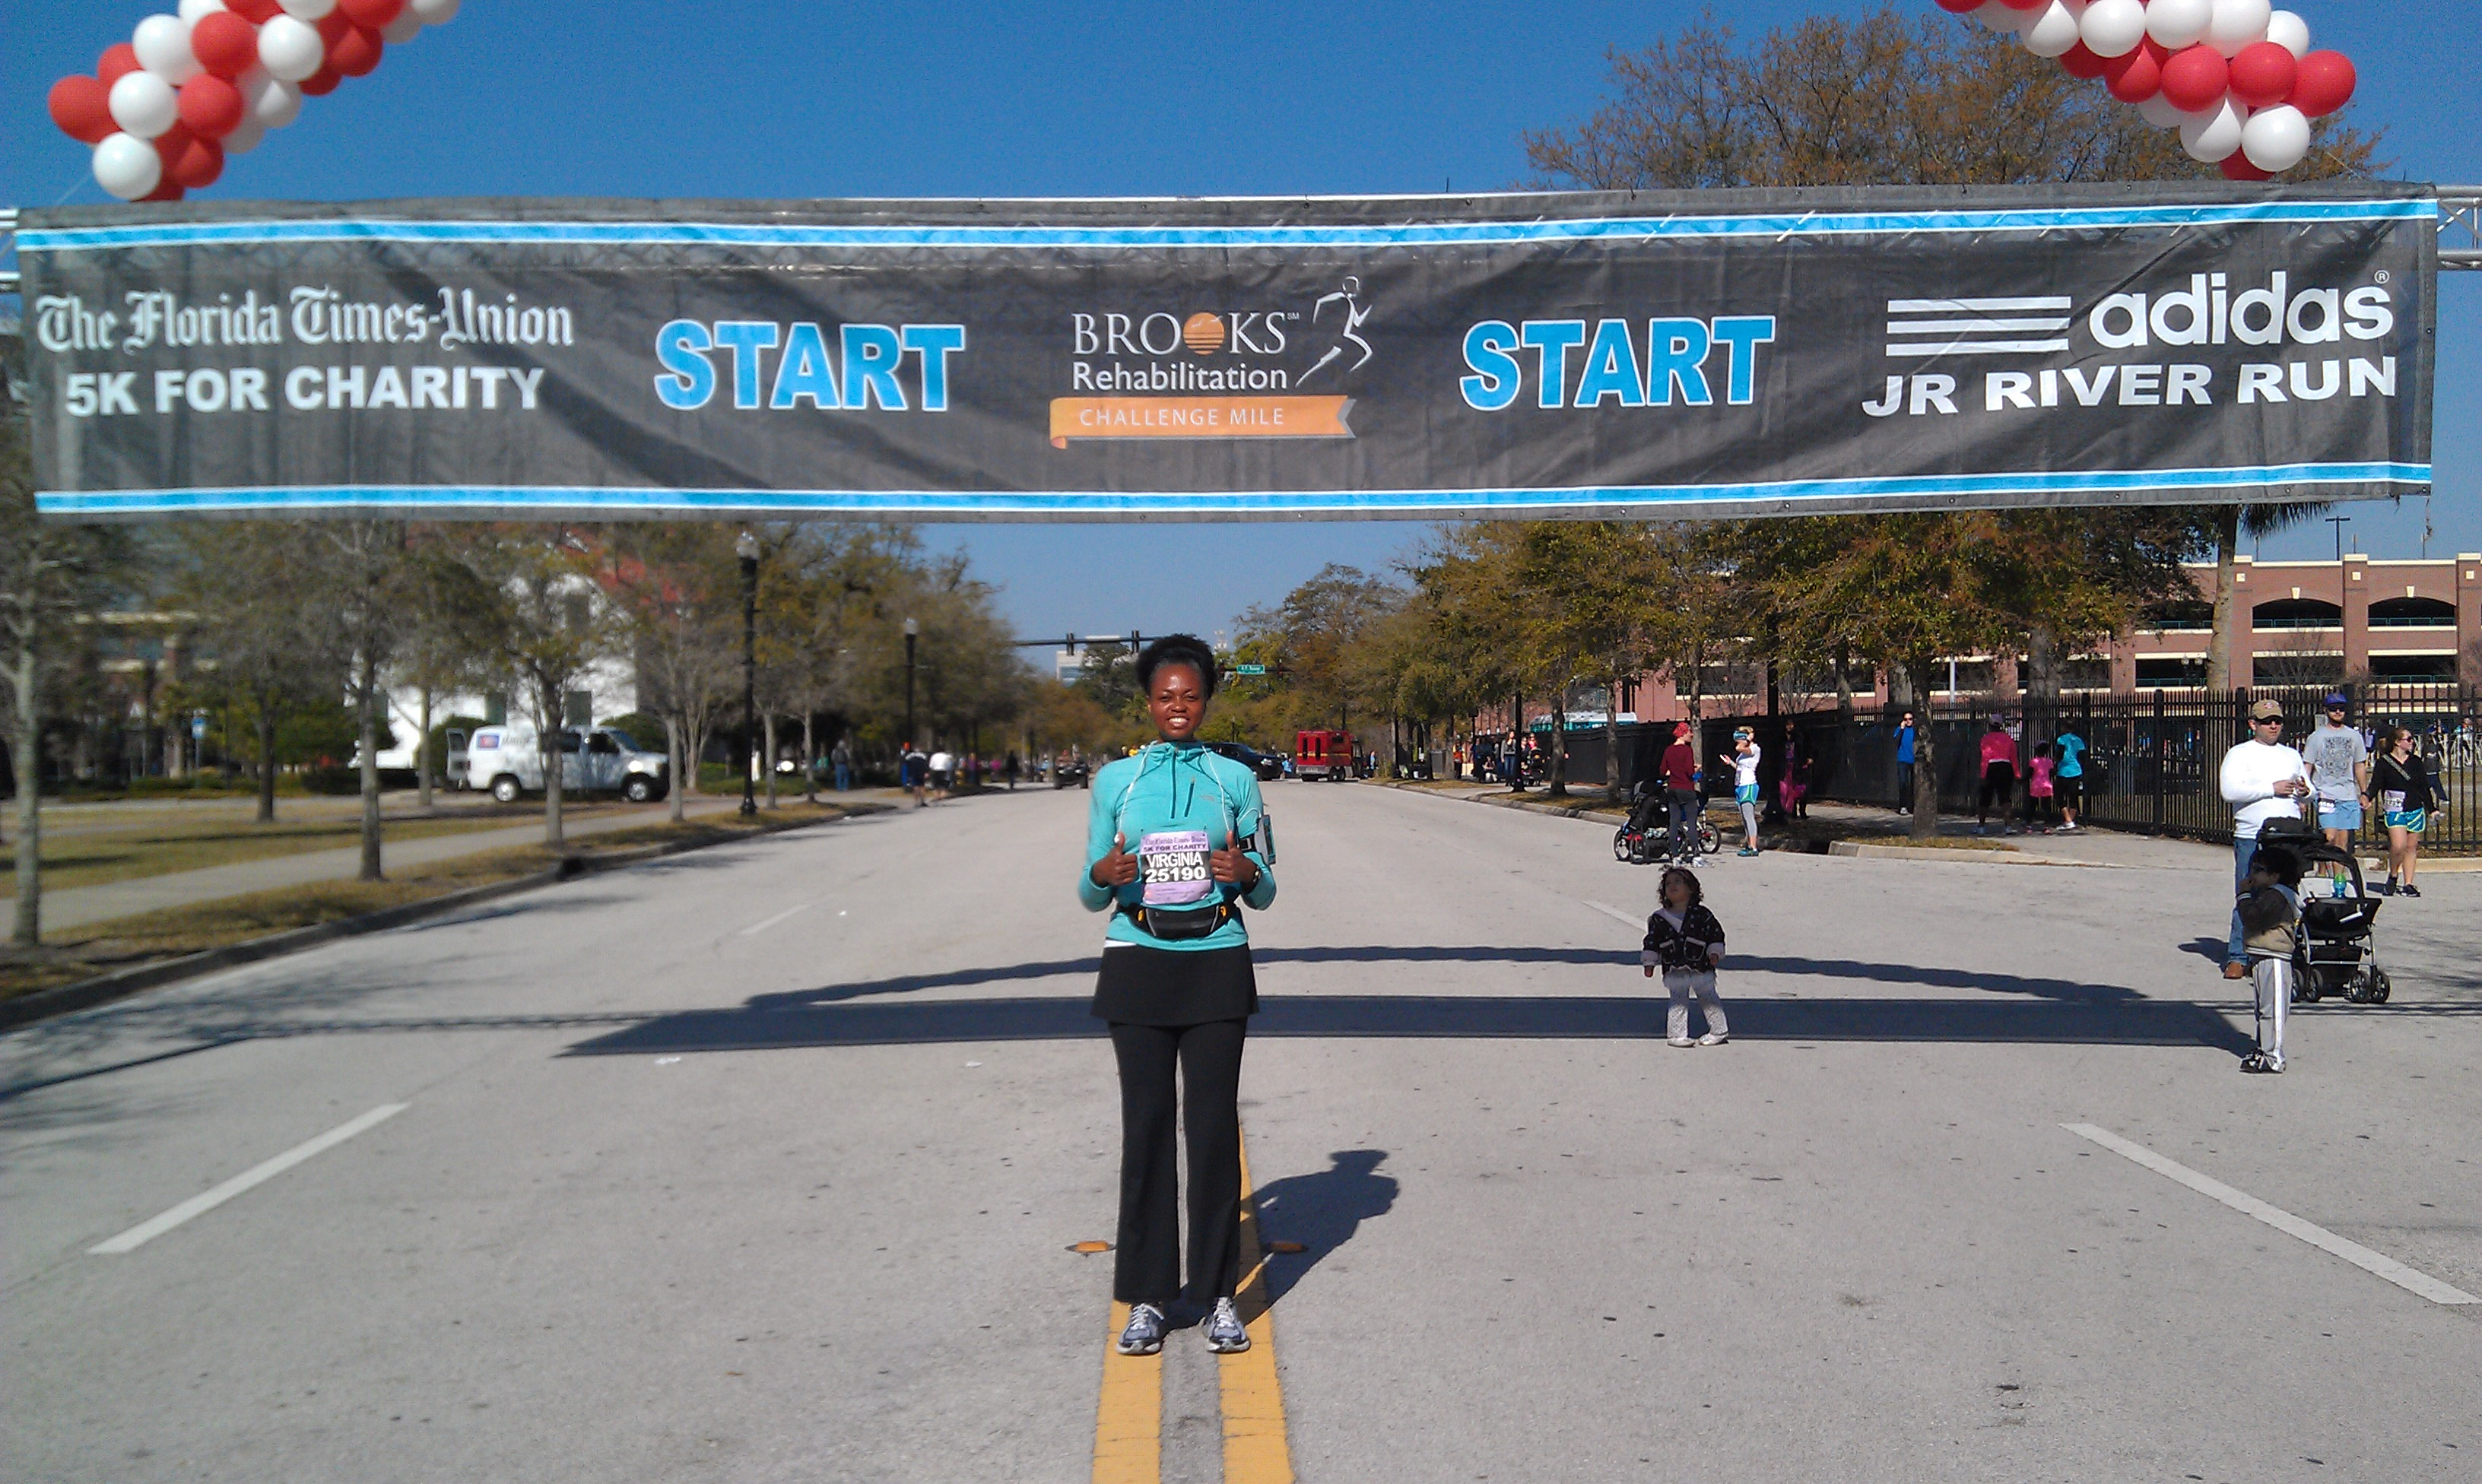 gate-river-run-2013-5k-starting-line-jacksonville-florida.jpg